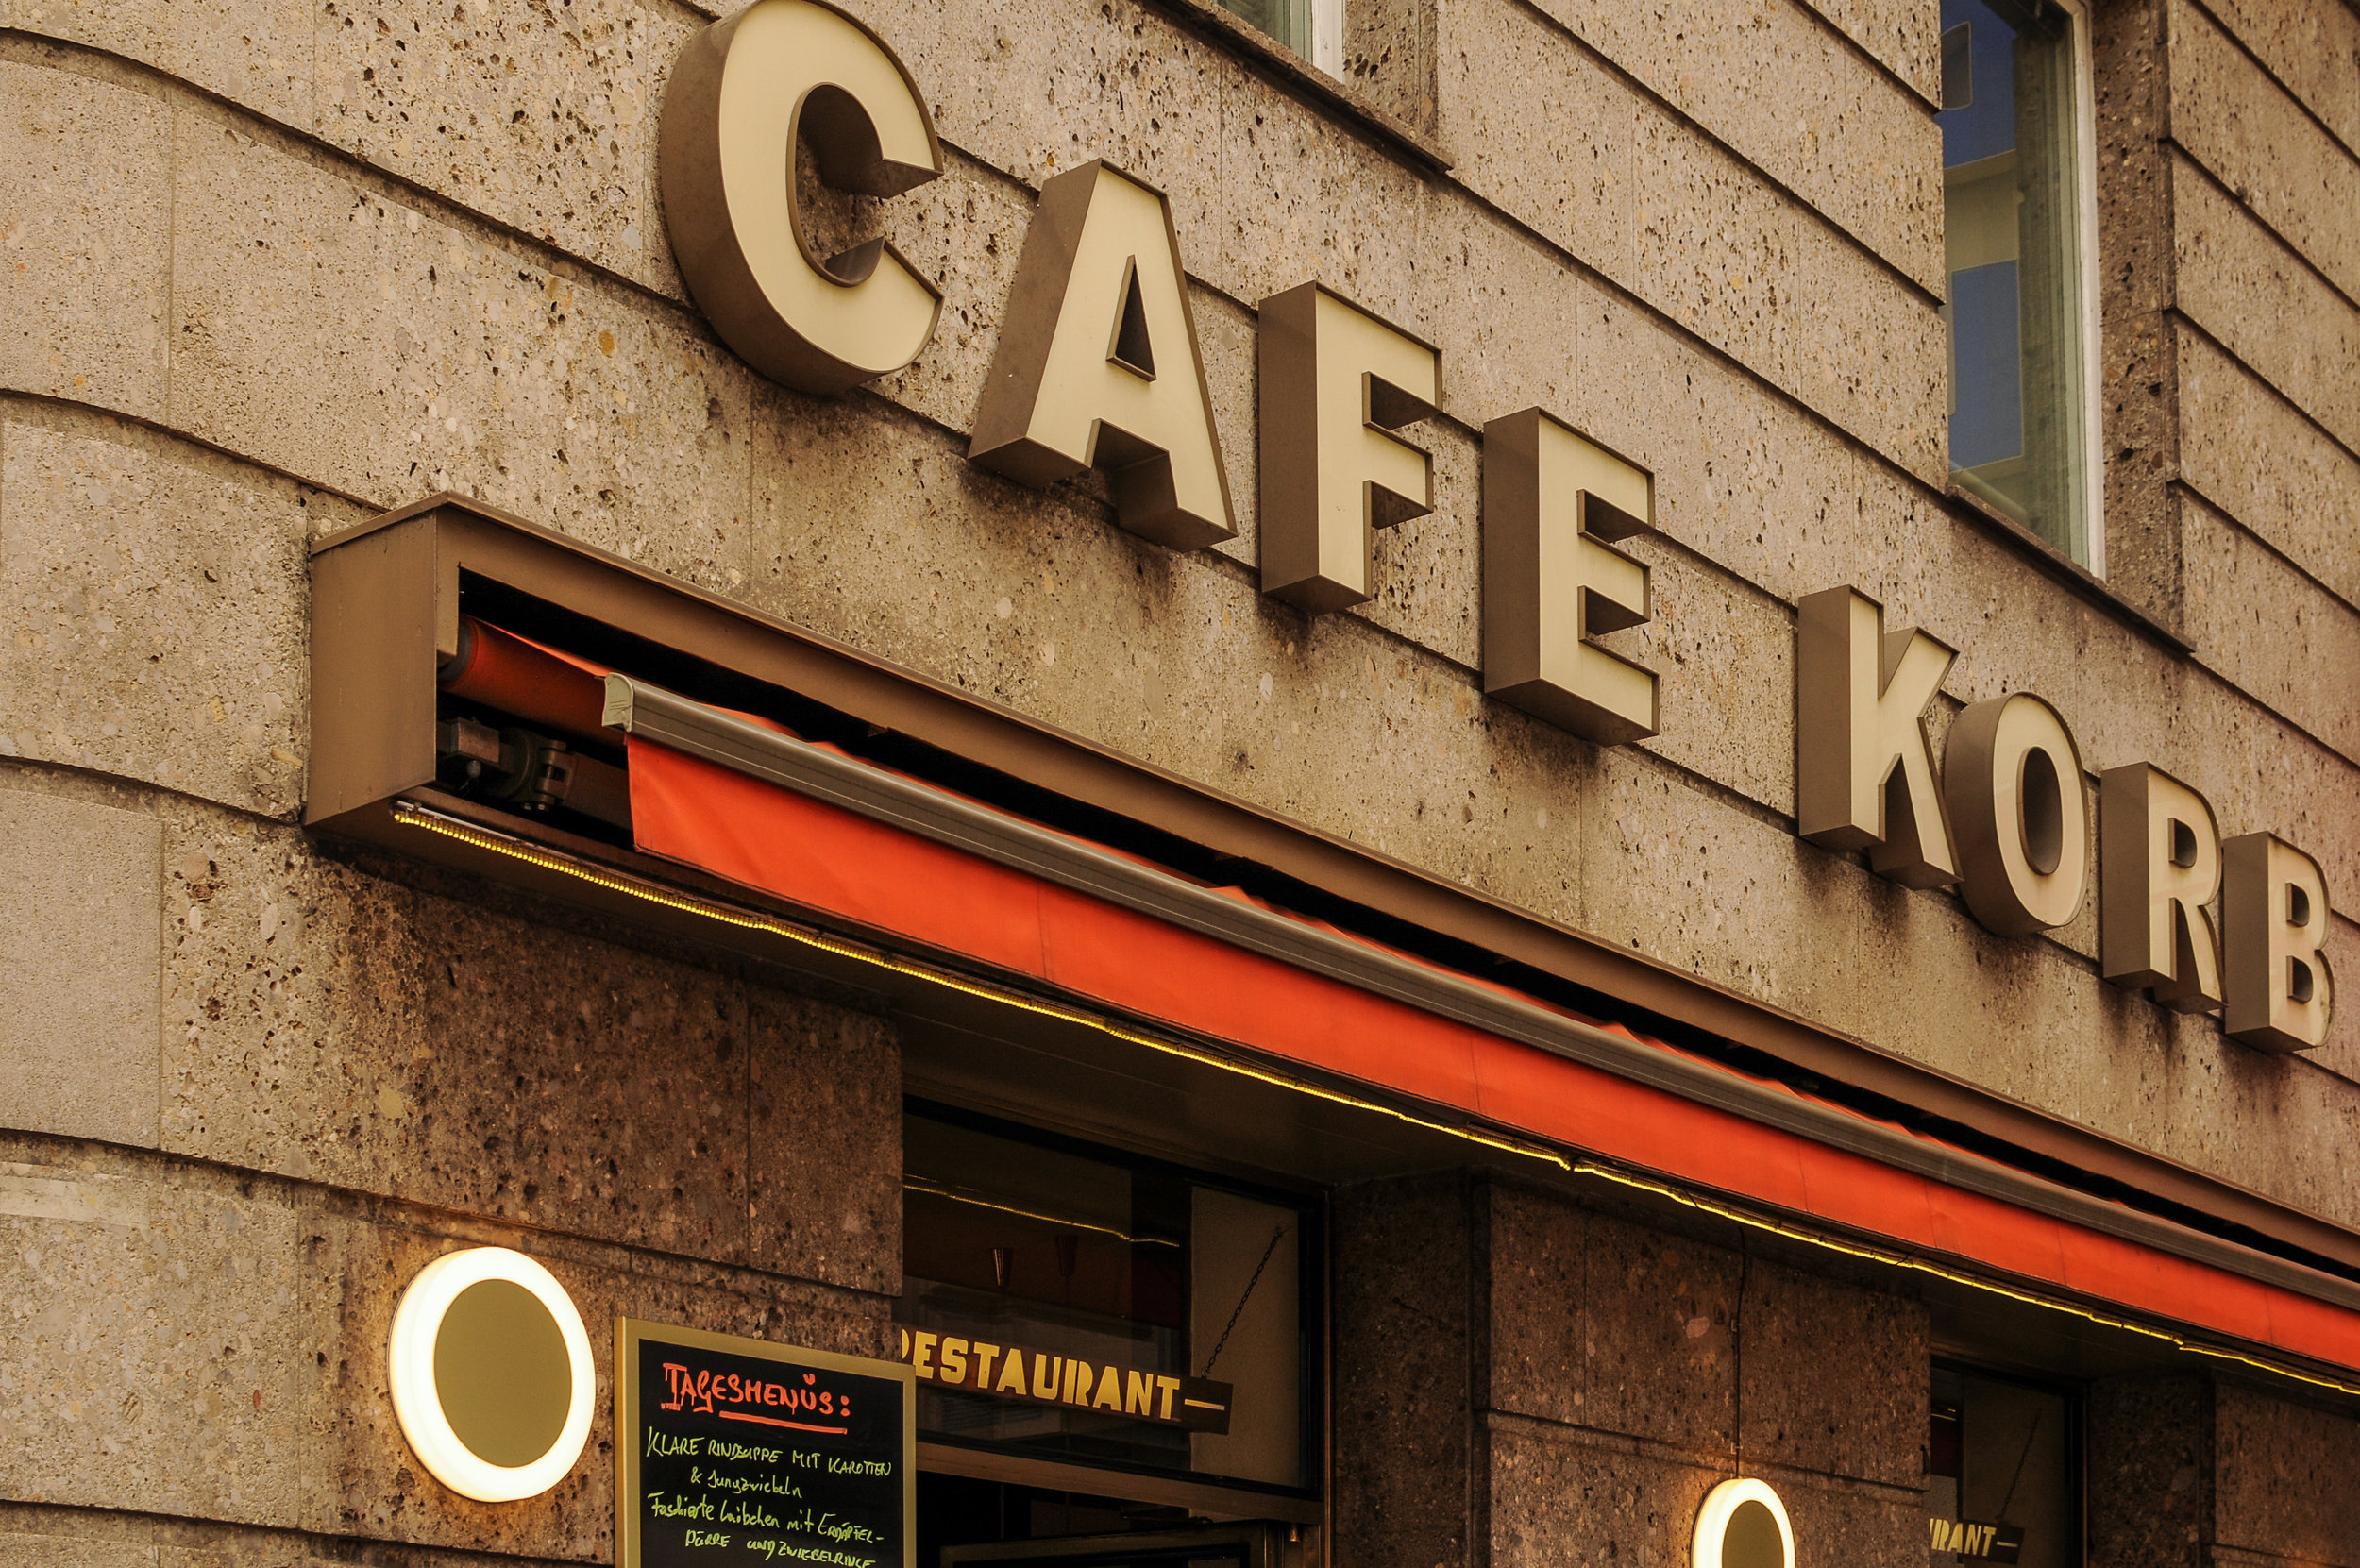 Cafe Korb © We Are Vienna